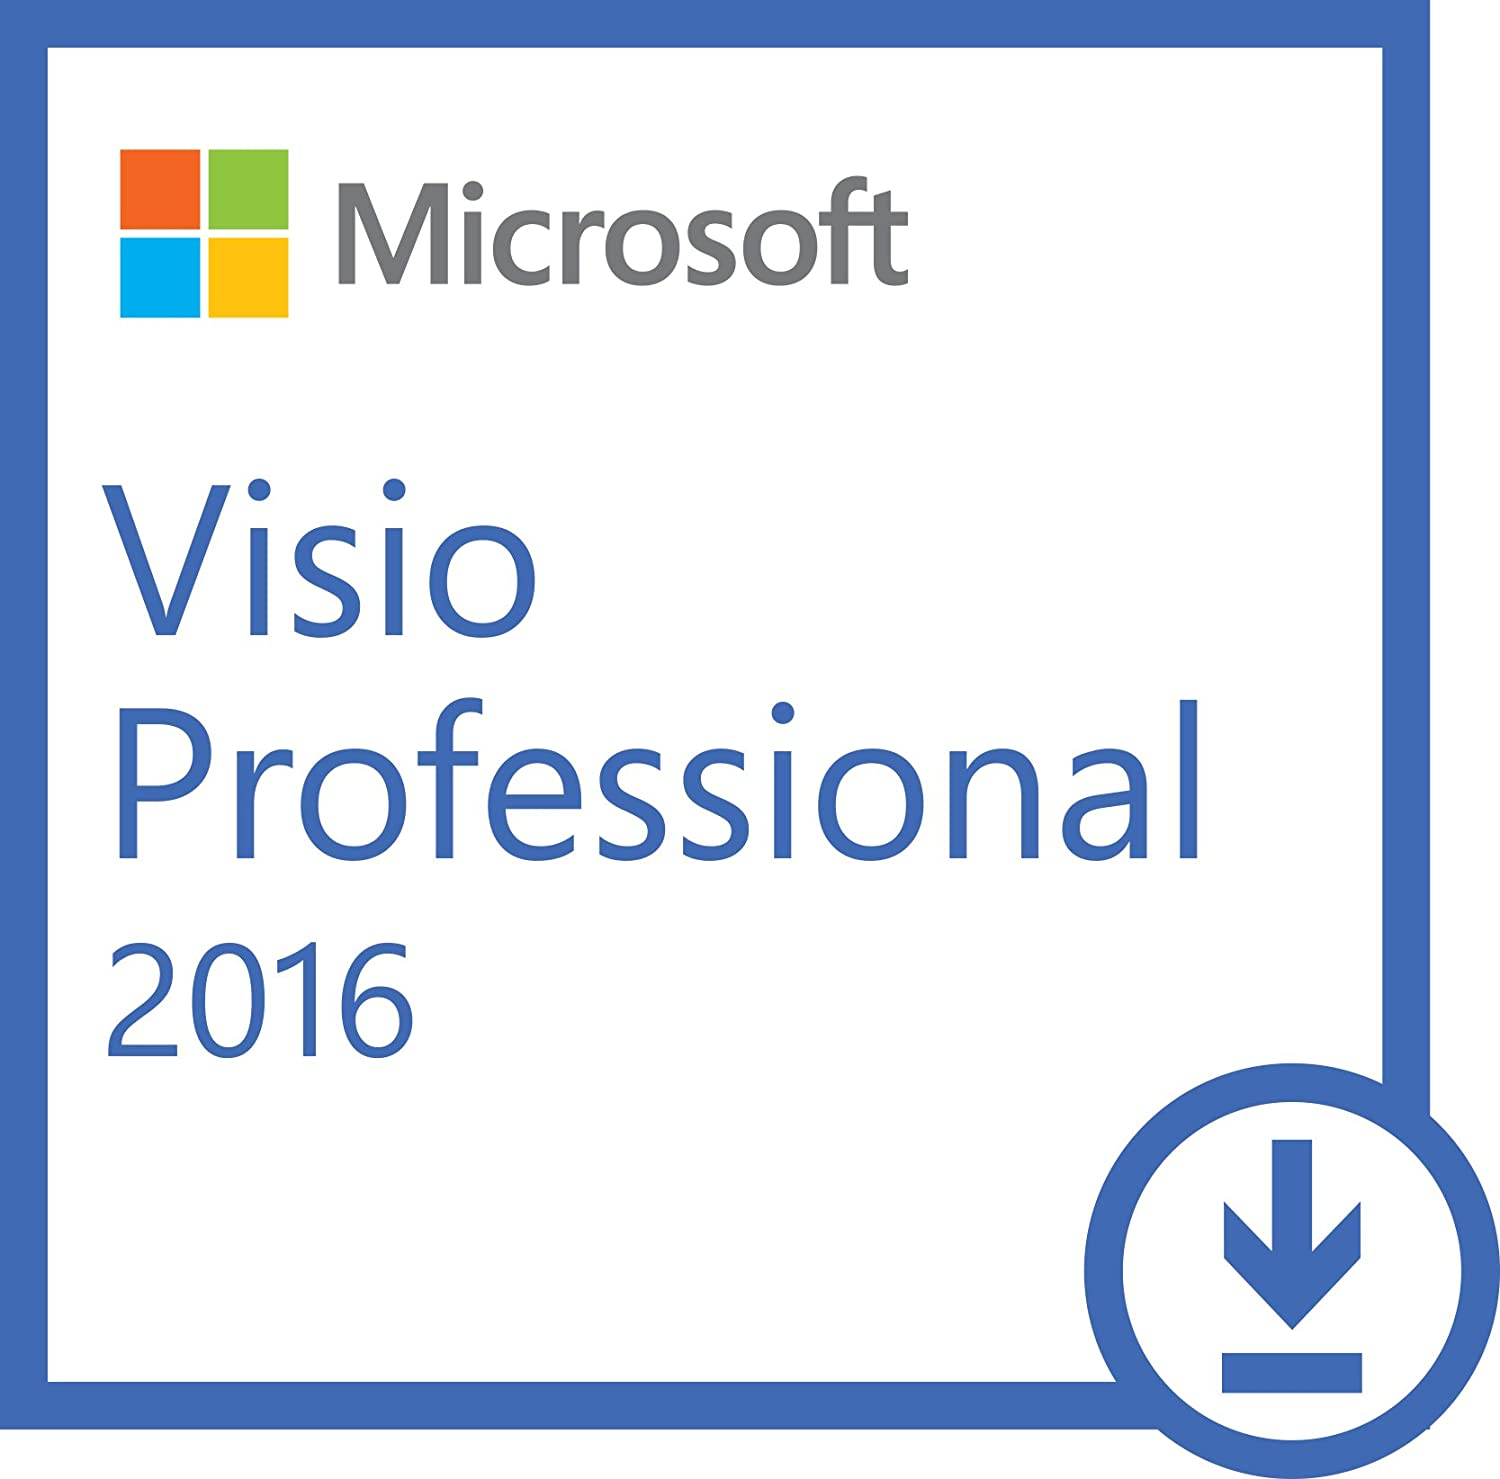 amazoncom microsoft visio professional 2016 pc download software - Download Microsoft Visio Free Trial